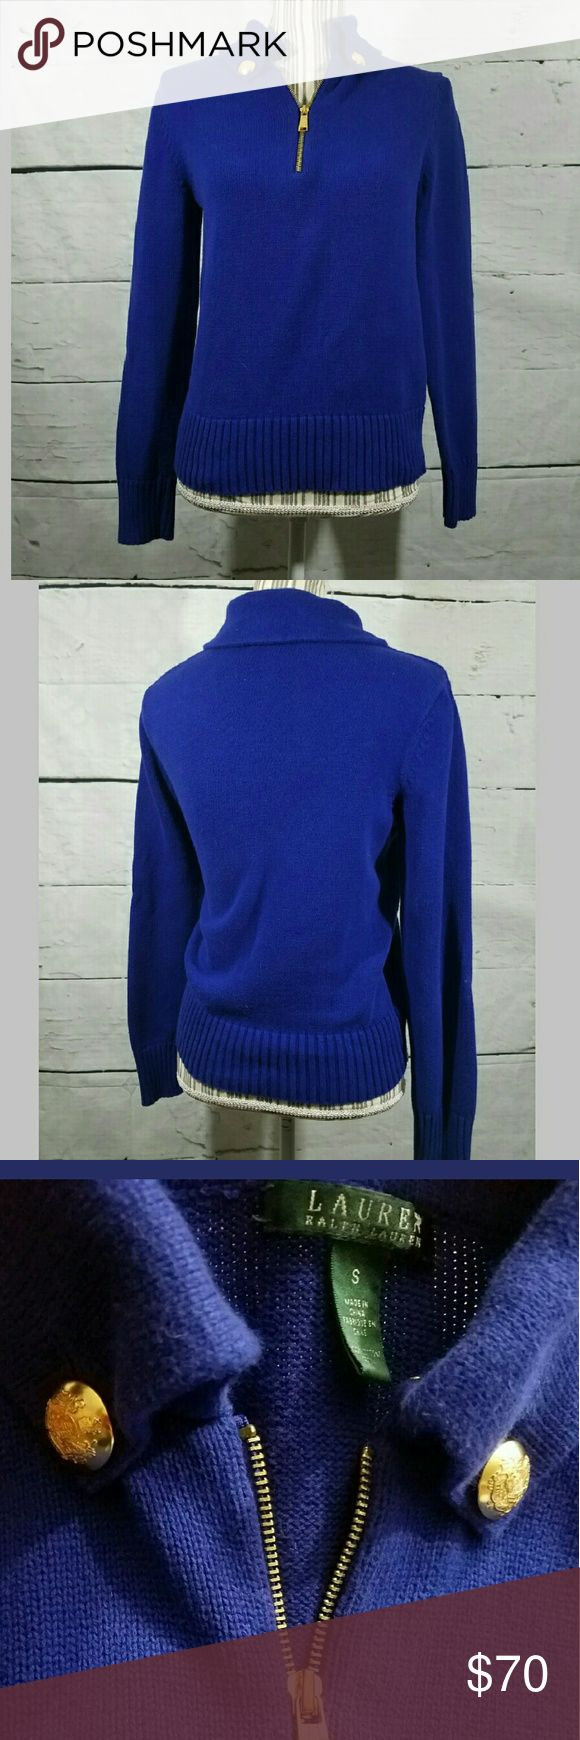 Lauren Ralph Lauren Zipper Cotton Sweater Collar Lauren Ralph Lauren Zipper Cotton Sweater Collar Buttons Blue Gold Small  No holes or stains. Very Good used condition.  19 inches pit to pit. 23 inches long.  LB Lauren Ralph Lauren Sweaters